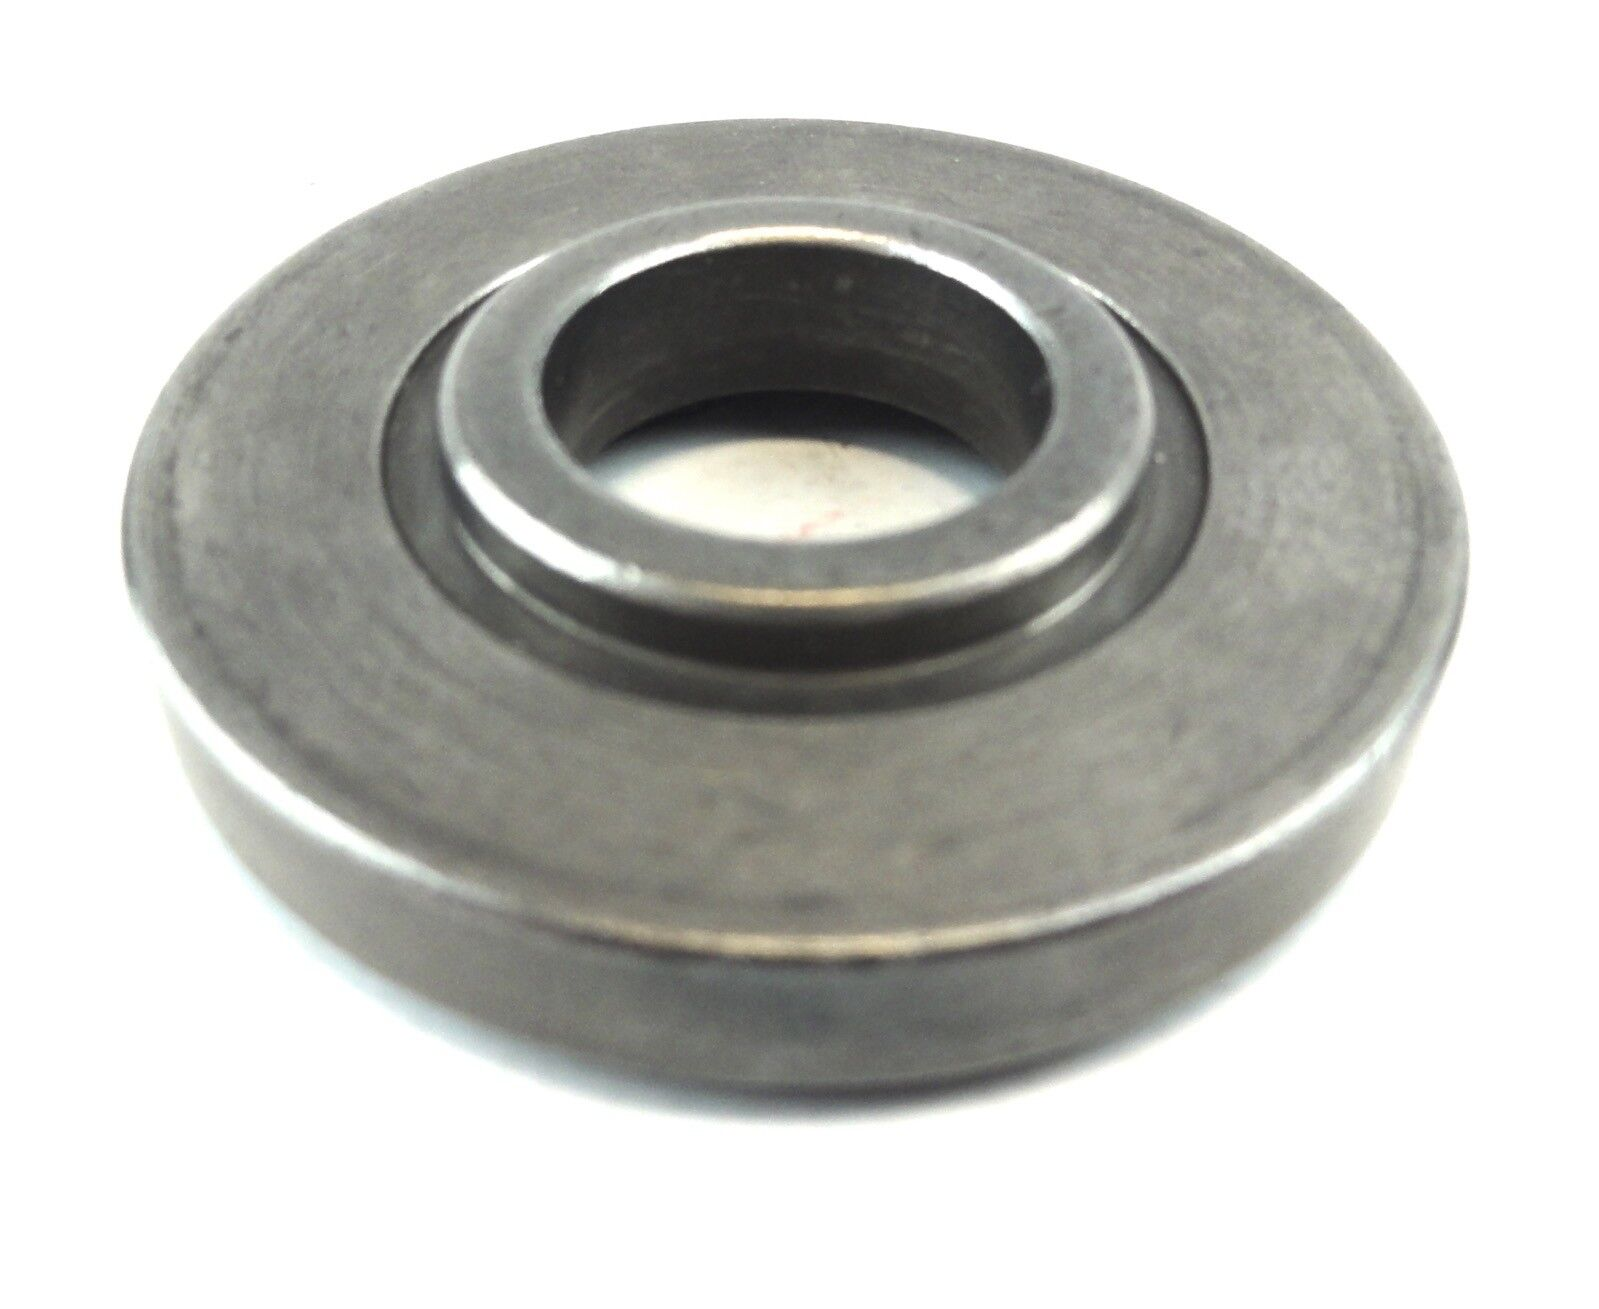 Metabo 316055450 Quick Flange Nut W7-115 W7-125 WE14-125 WE14-150 WE9-125 W8-115